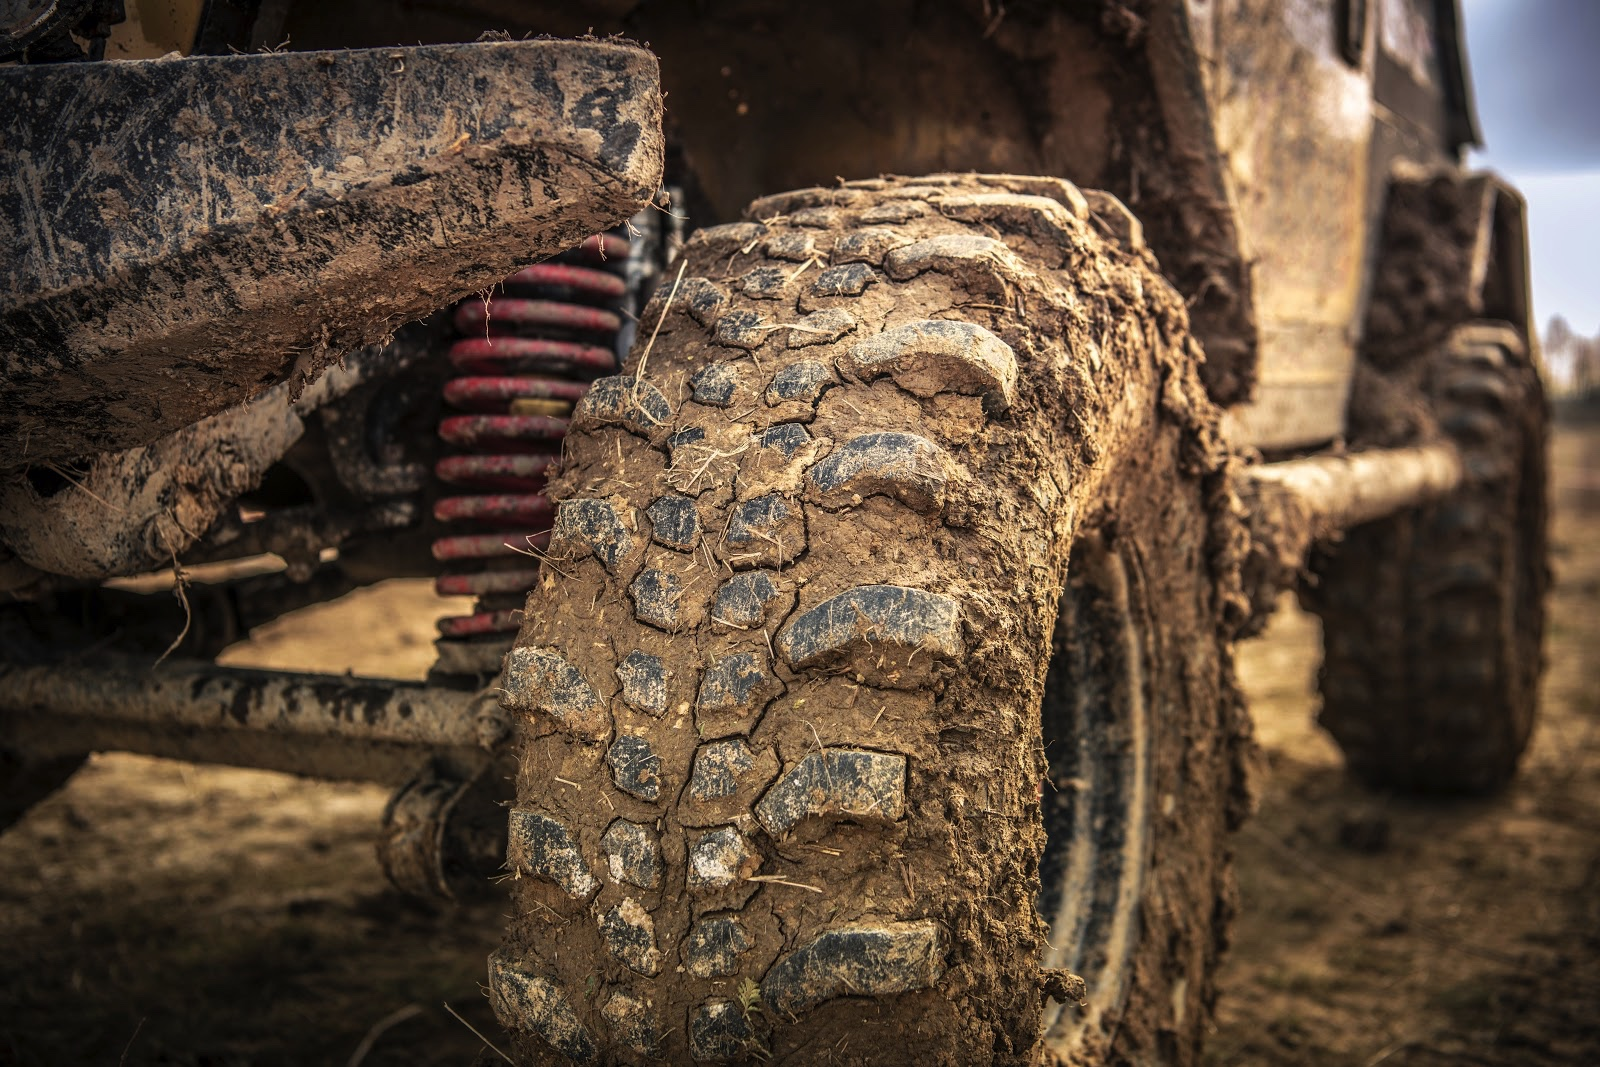 STUCK IN THE MUCK?